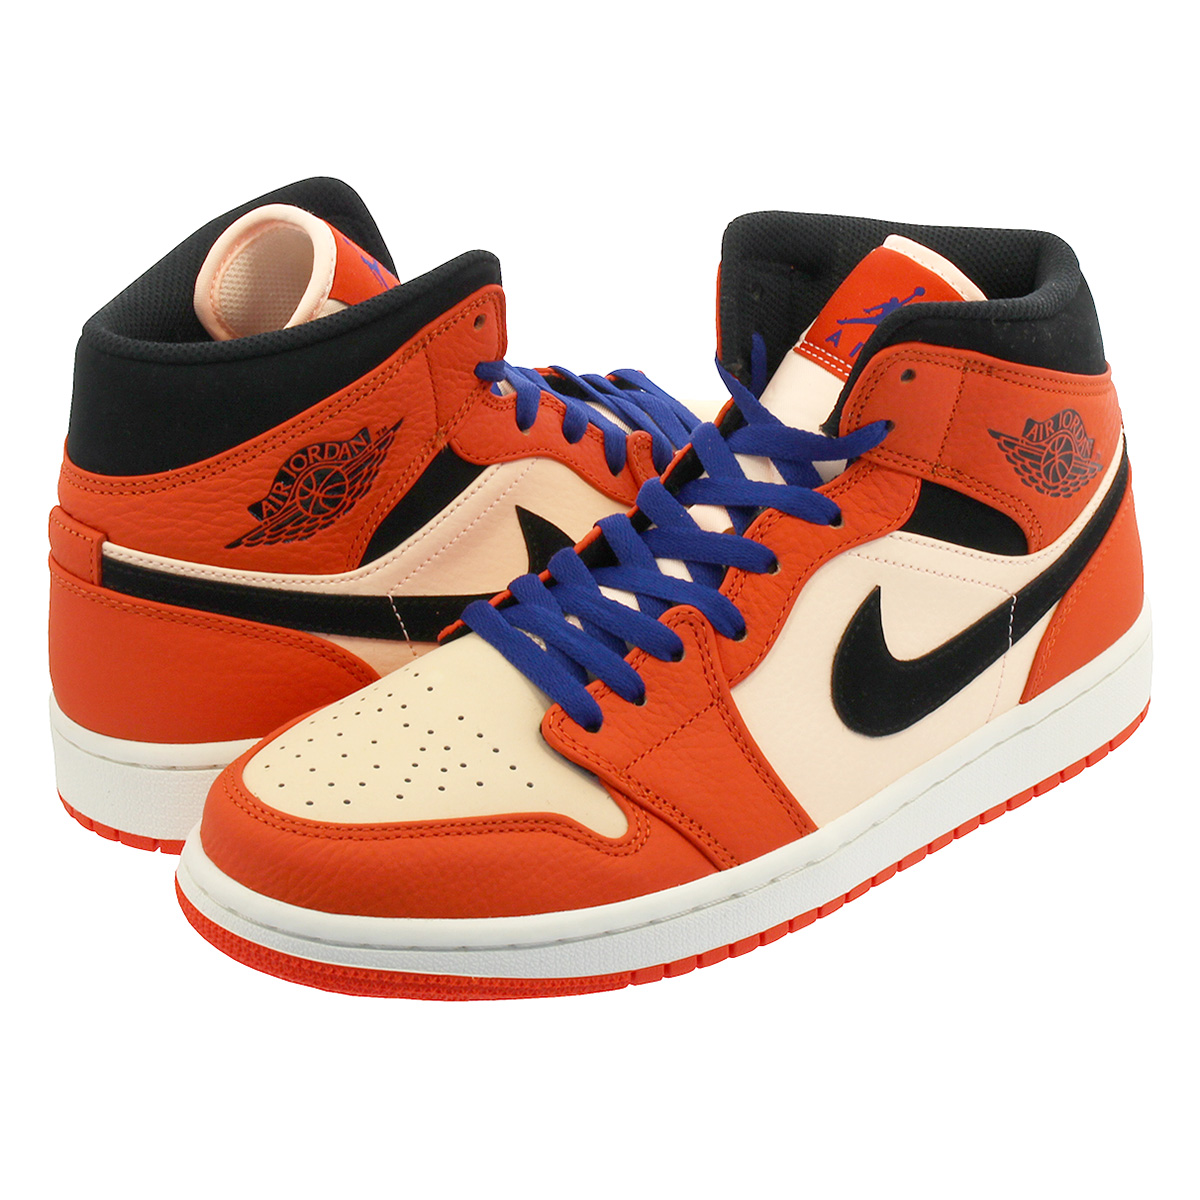 f6880ba8092a NIKE AIR JORDAN 1 MID SE Nike Air Jordan 1 mid SE TEAM ORANGE BLACK CRIMSON  TINT 852